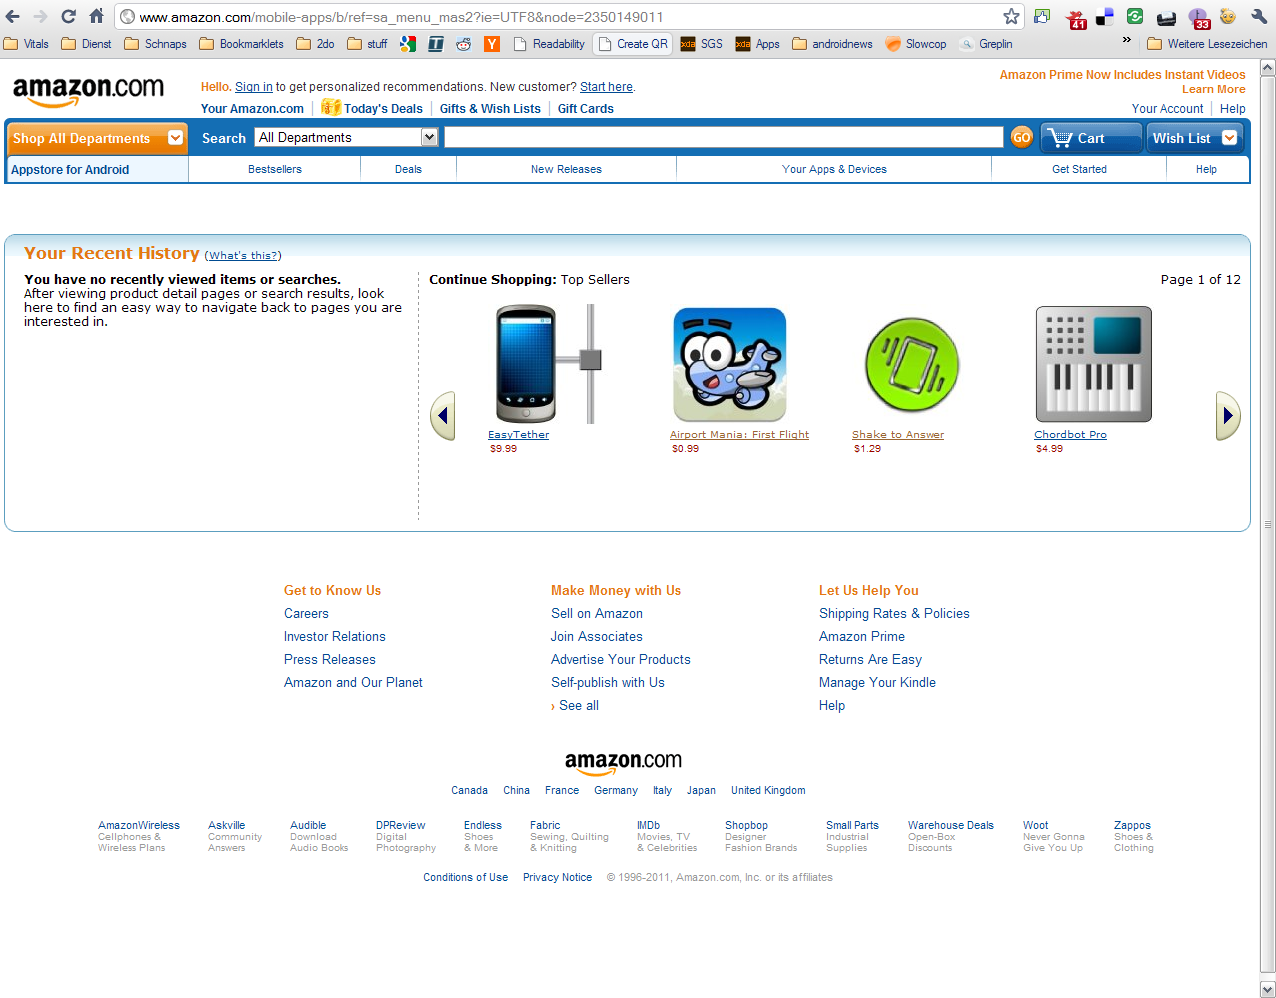 Amazon Appstore: Apps and Prices Leak